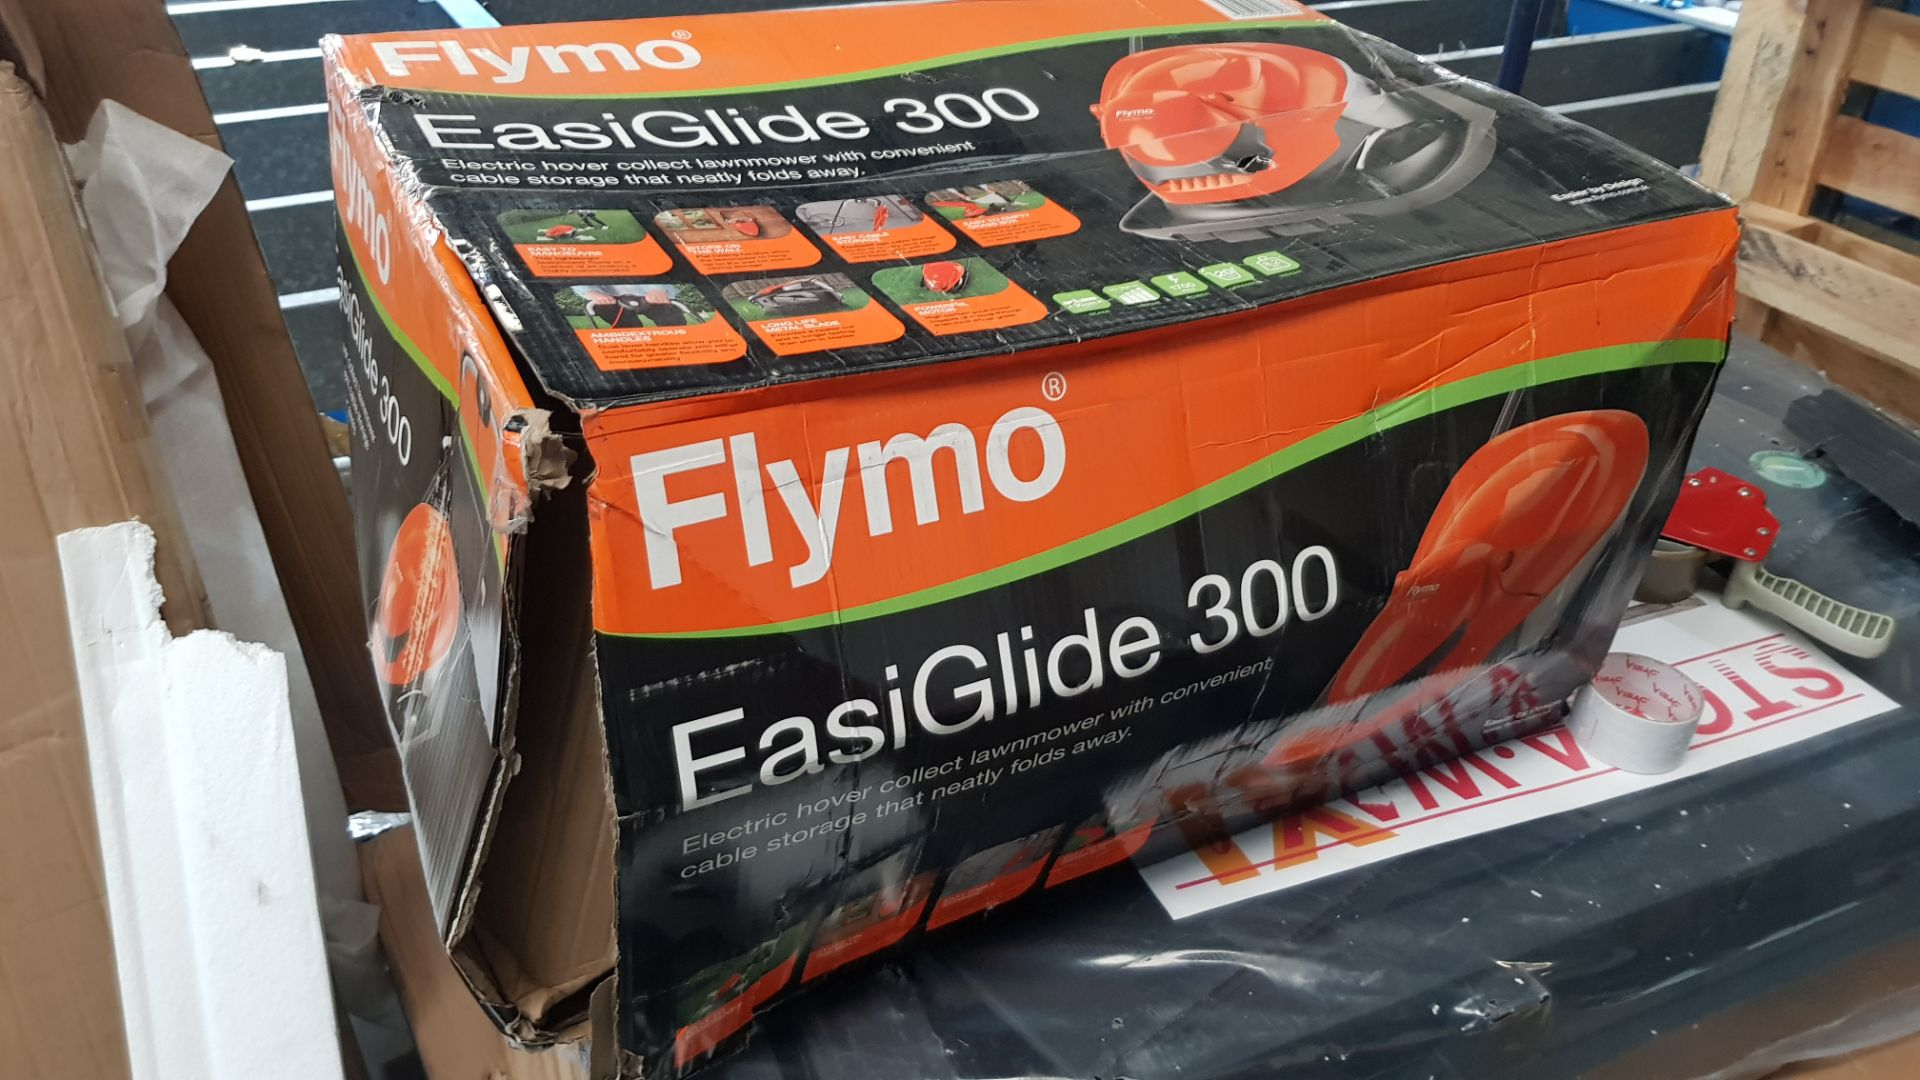 (P6) 1x Flymo EasiGlide 300 Hover Collect Lawnmower RRP £99. New Item – Damage To Box. - Image 4 of 4